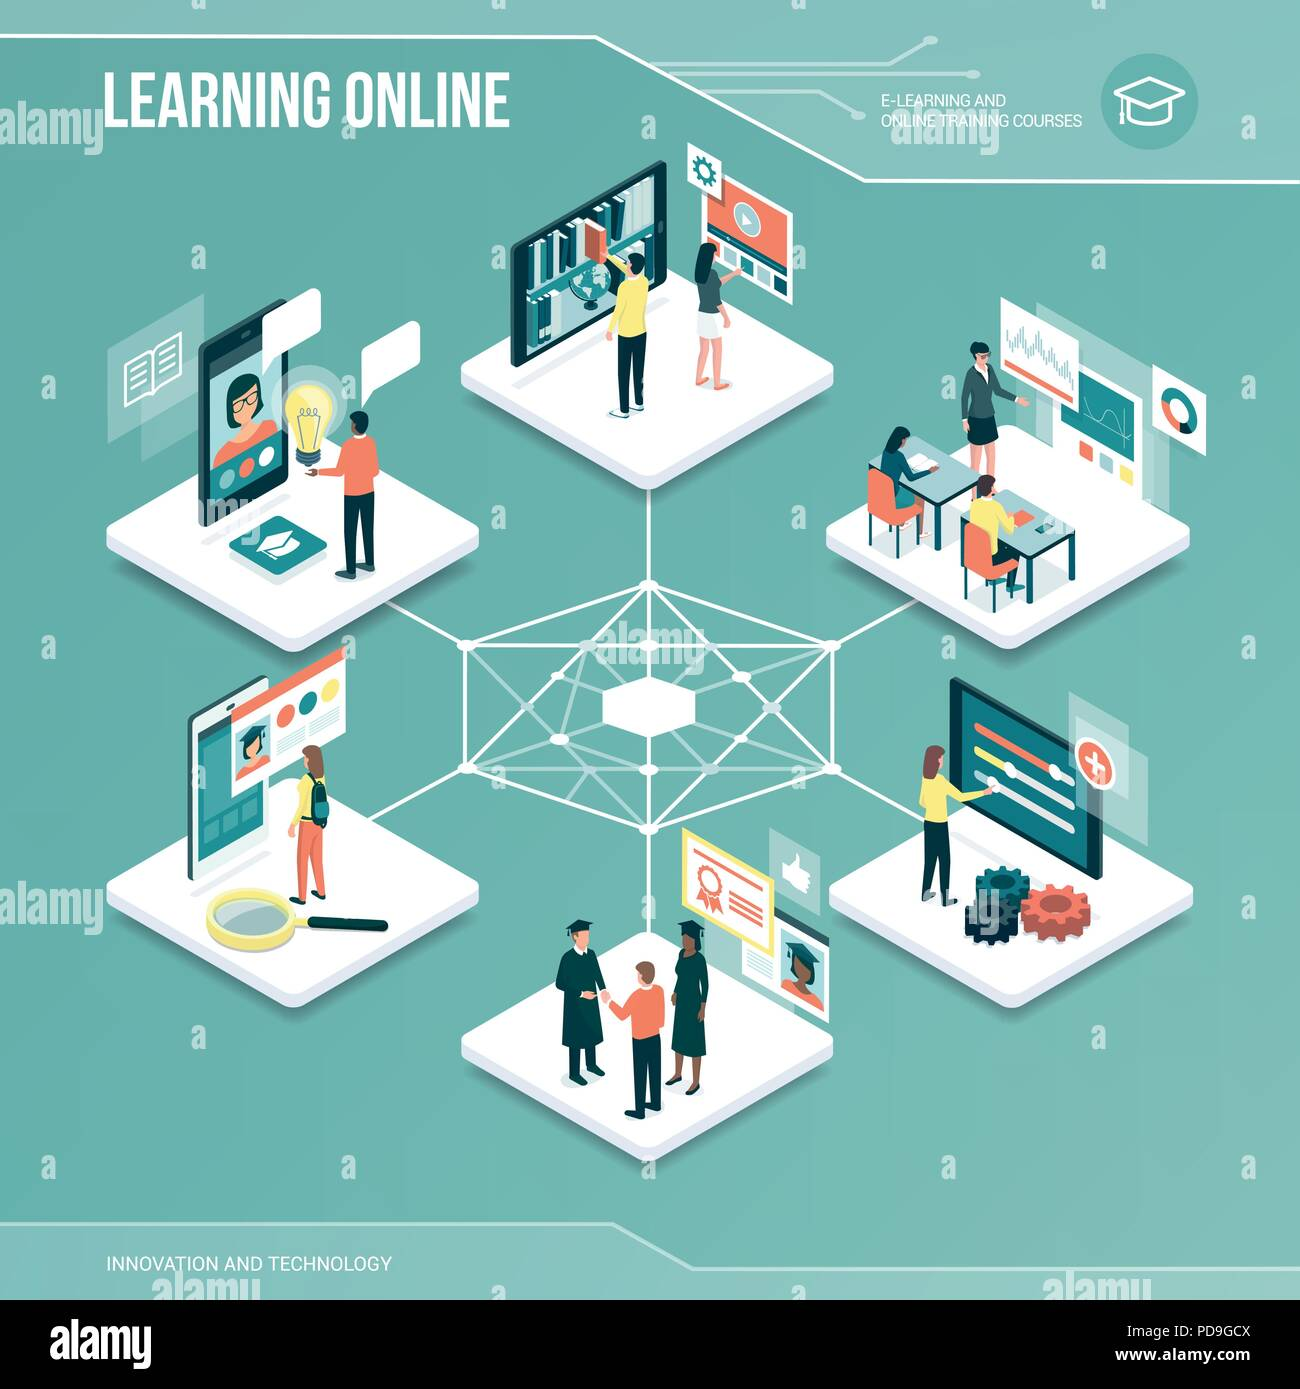 Digital core: online learning, university and job application isometric infographic with people - Stock Vector